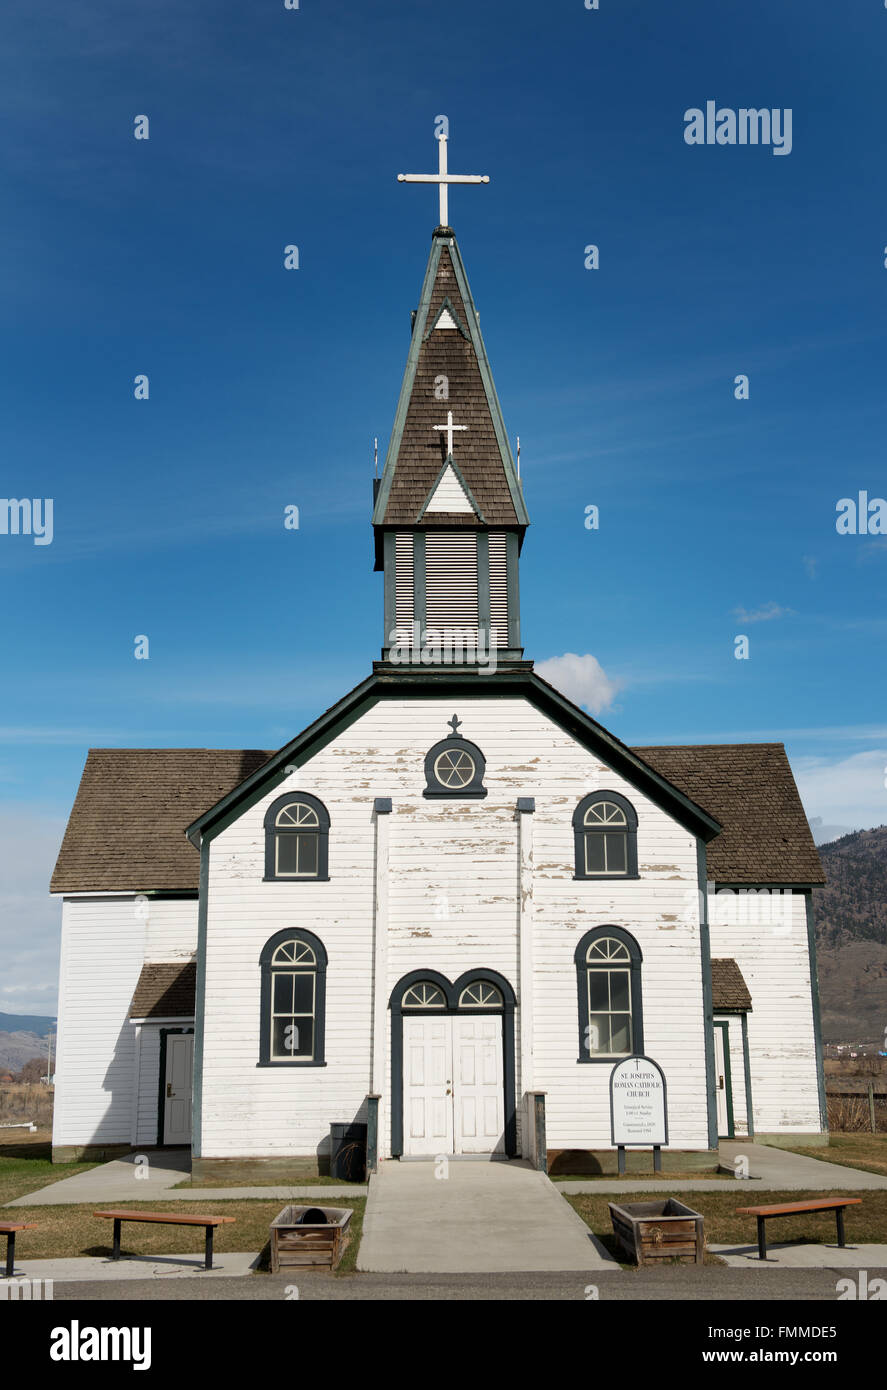 1870's era St Josephs Roman Catholic Church in Kamloops British Columbia, Canada. Stock Photo